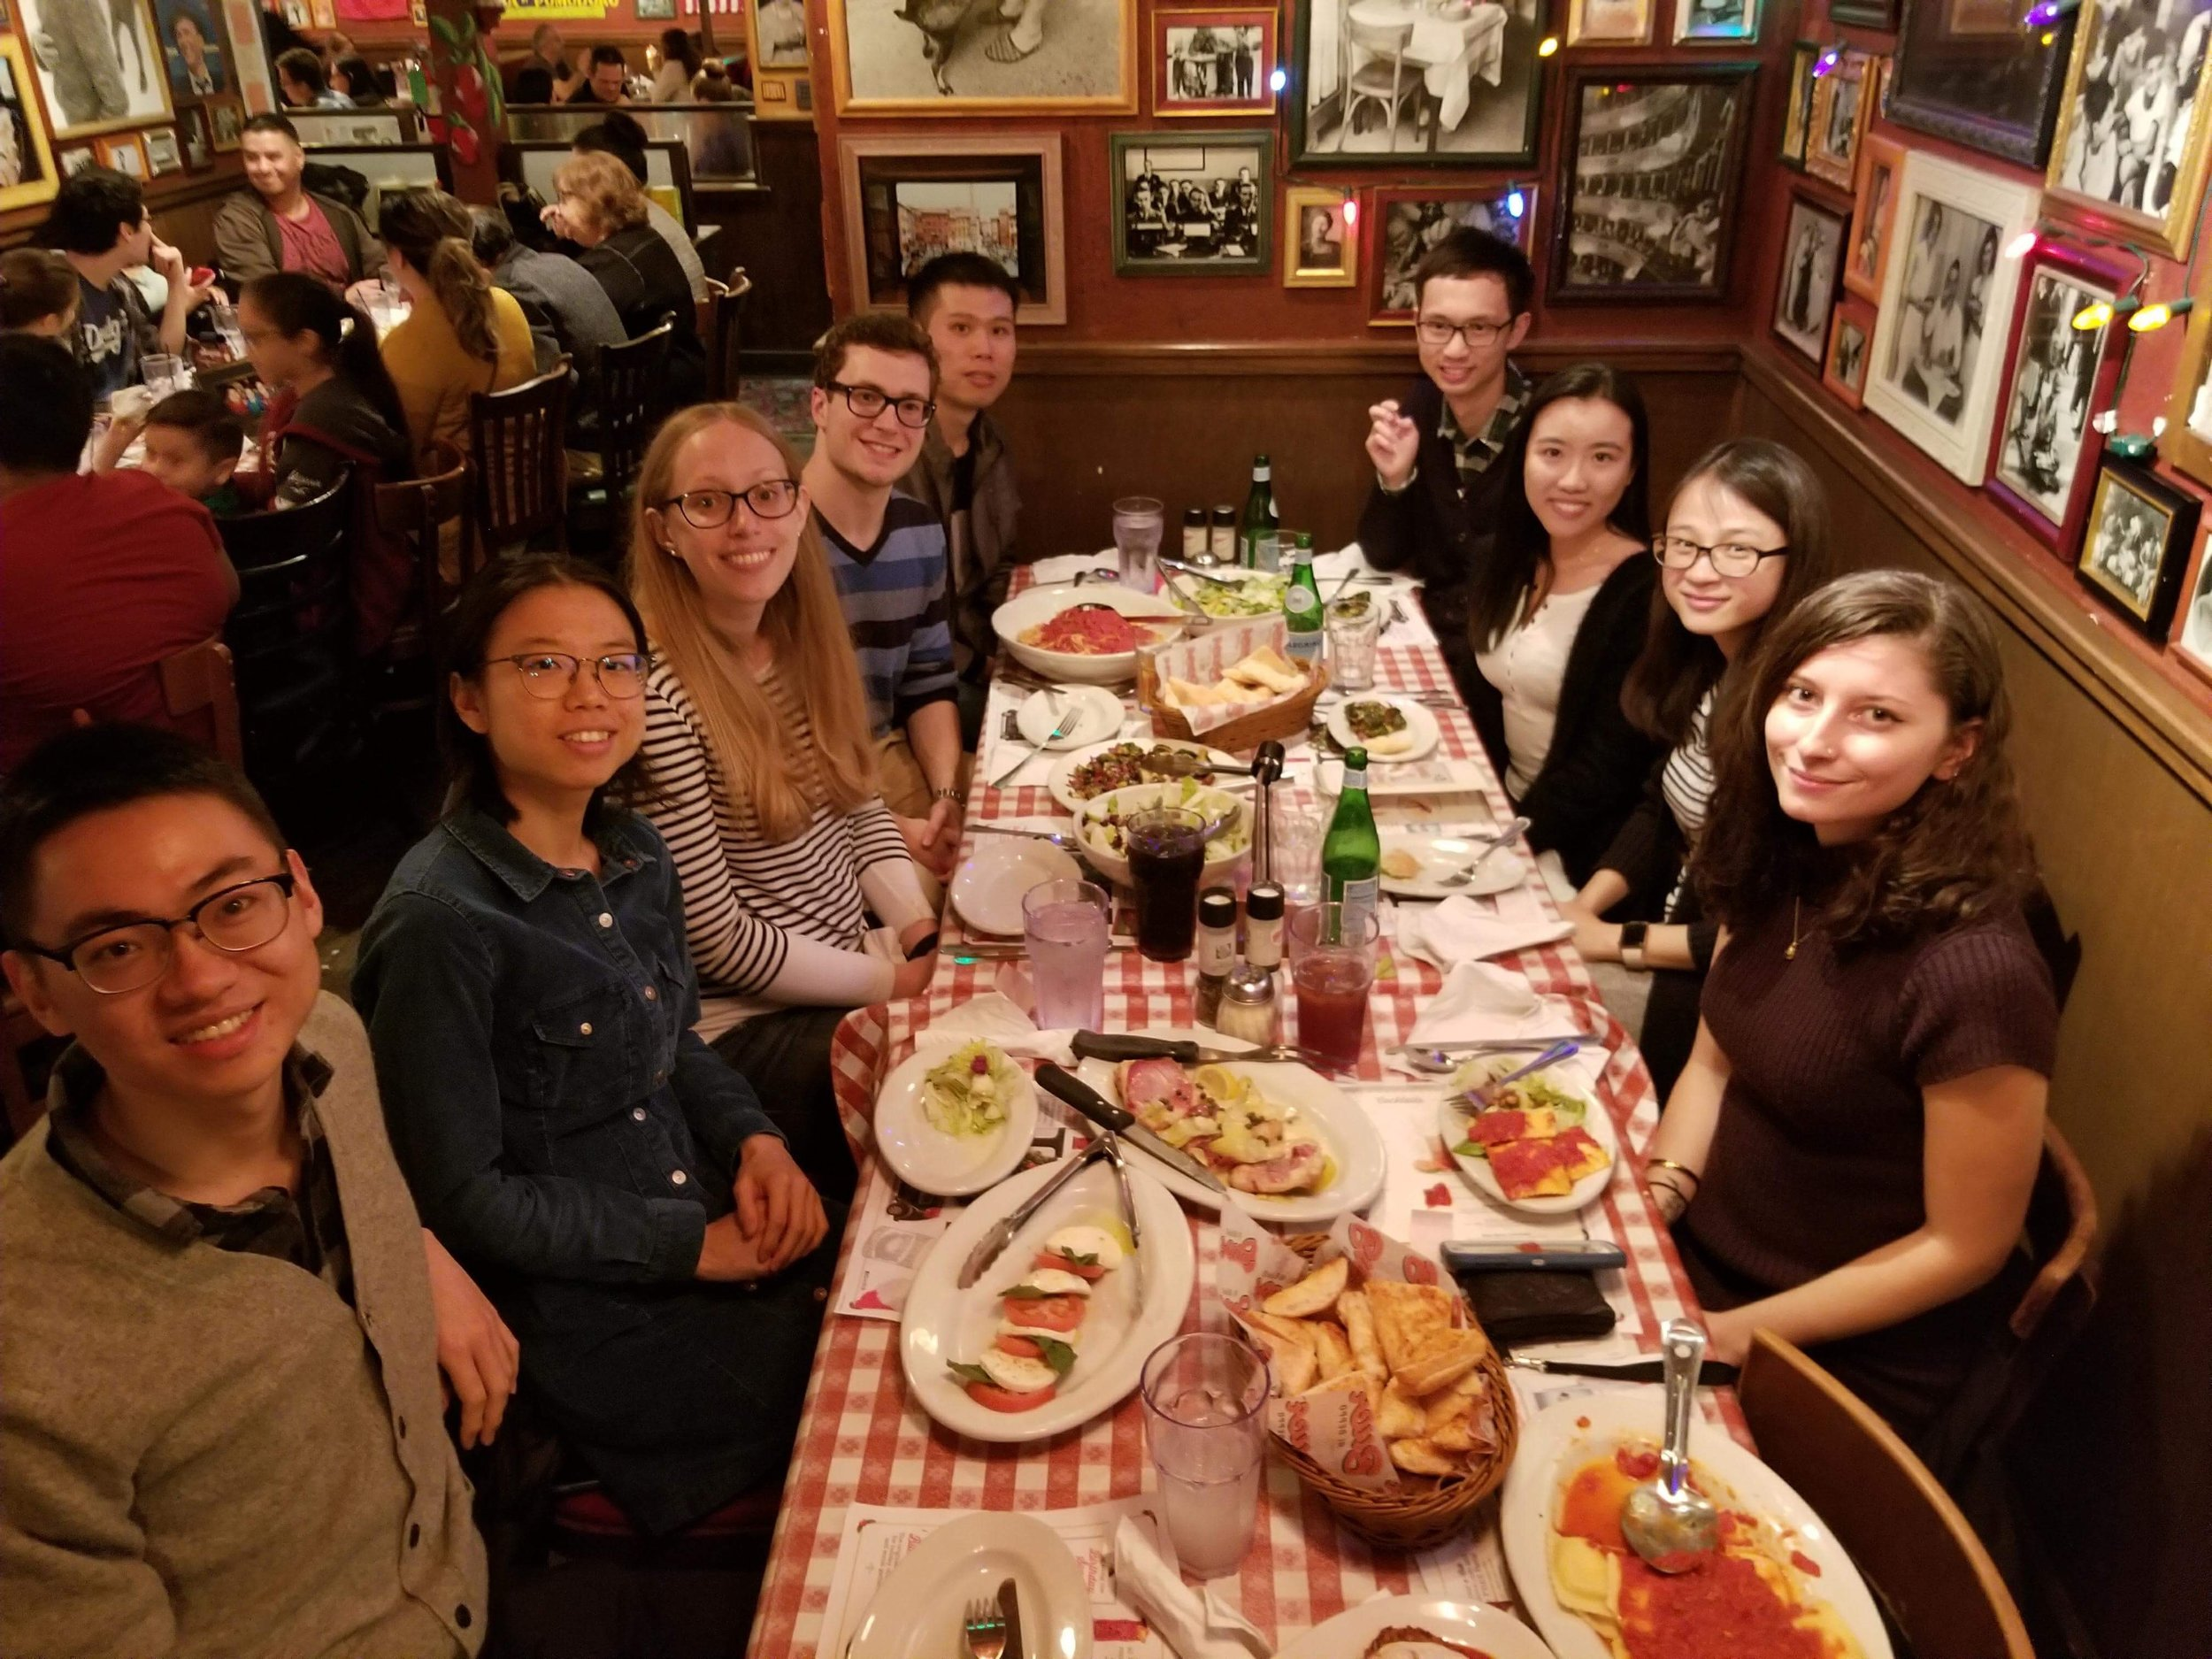 Caltech alumna Mary Wahl (BS, Biology '08) hosted 8 students for dinner at Buca di Beppo in Old Town Pasadena on January 6, 2018.